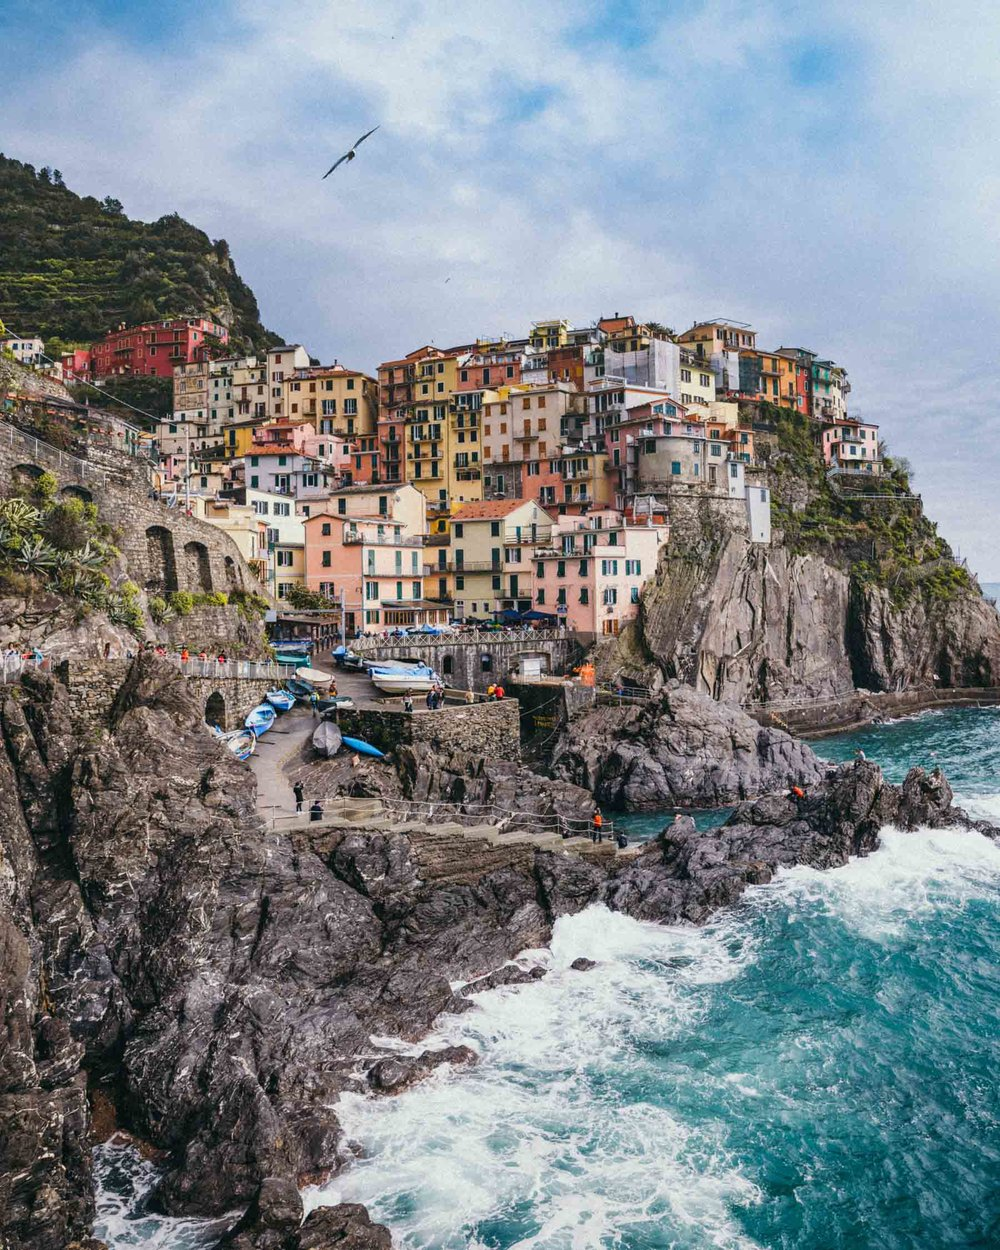 Cinque Terre Travel Guide By Madeline Lu-6.jpg